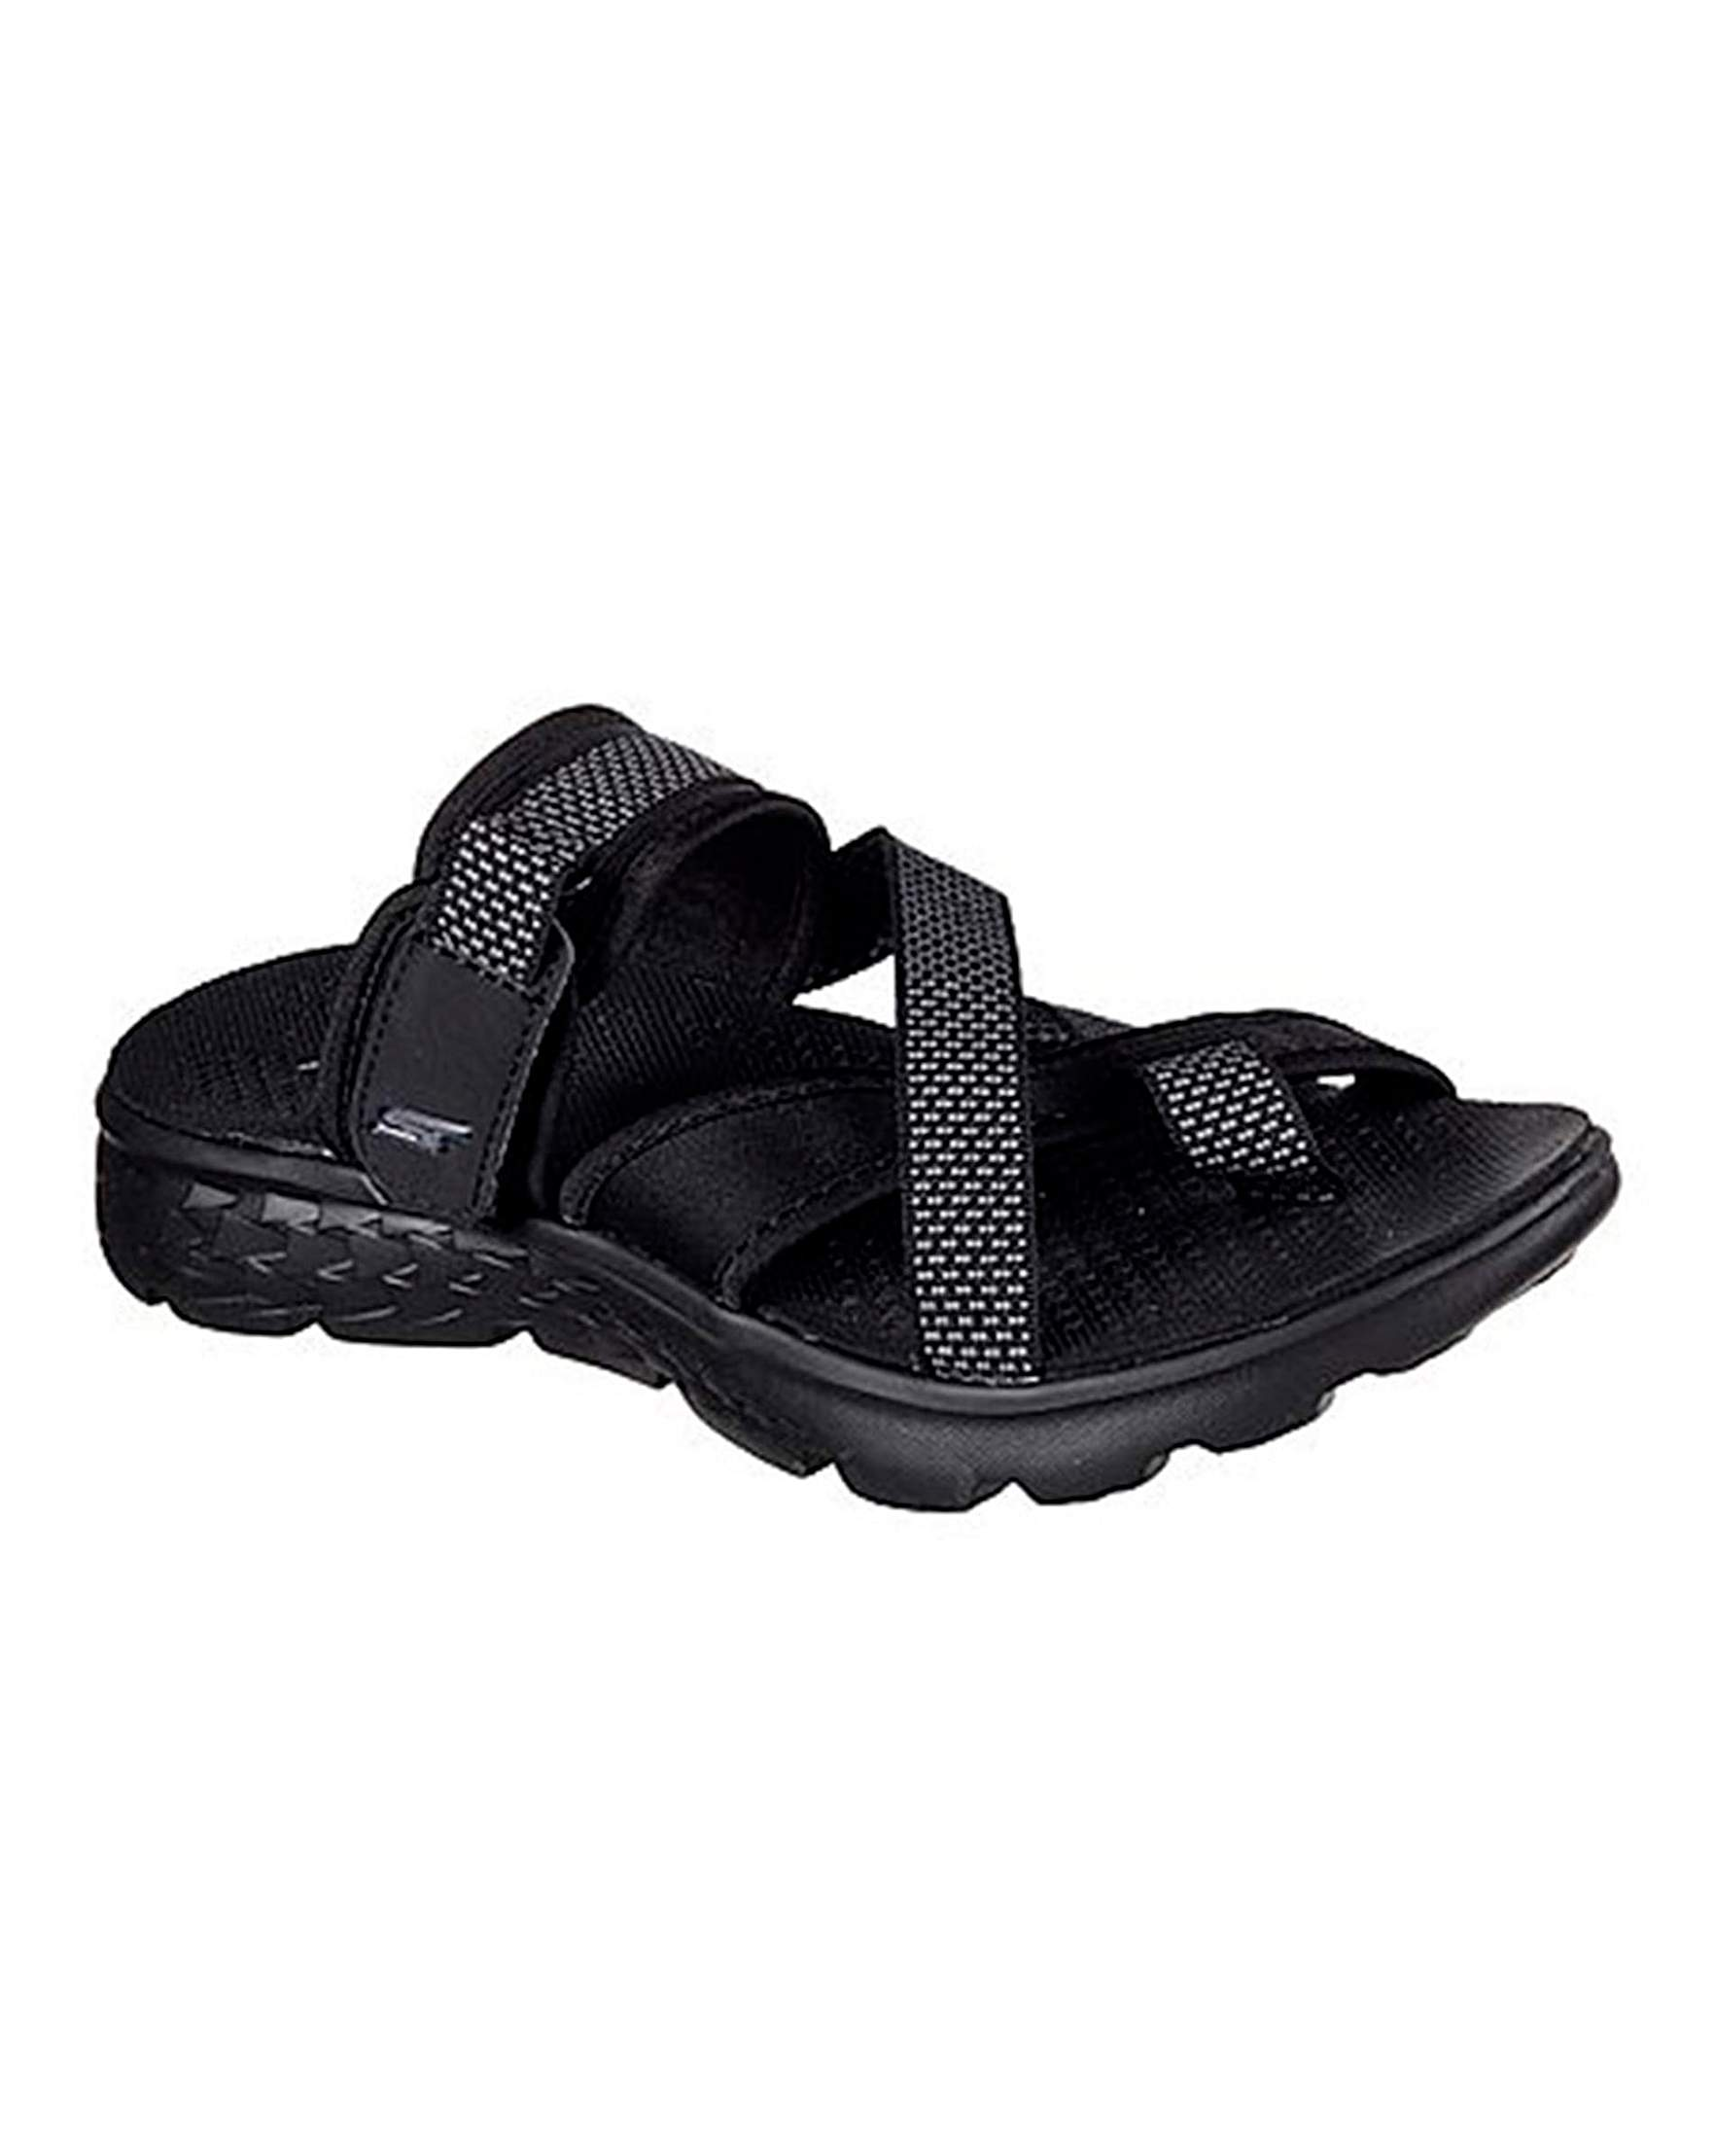 c0f569f84e70 Skechers On the Go 400 Discovery Sandals